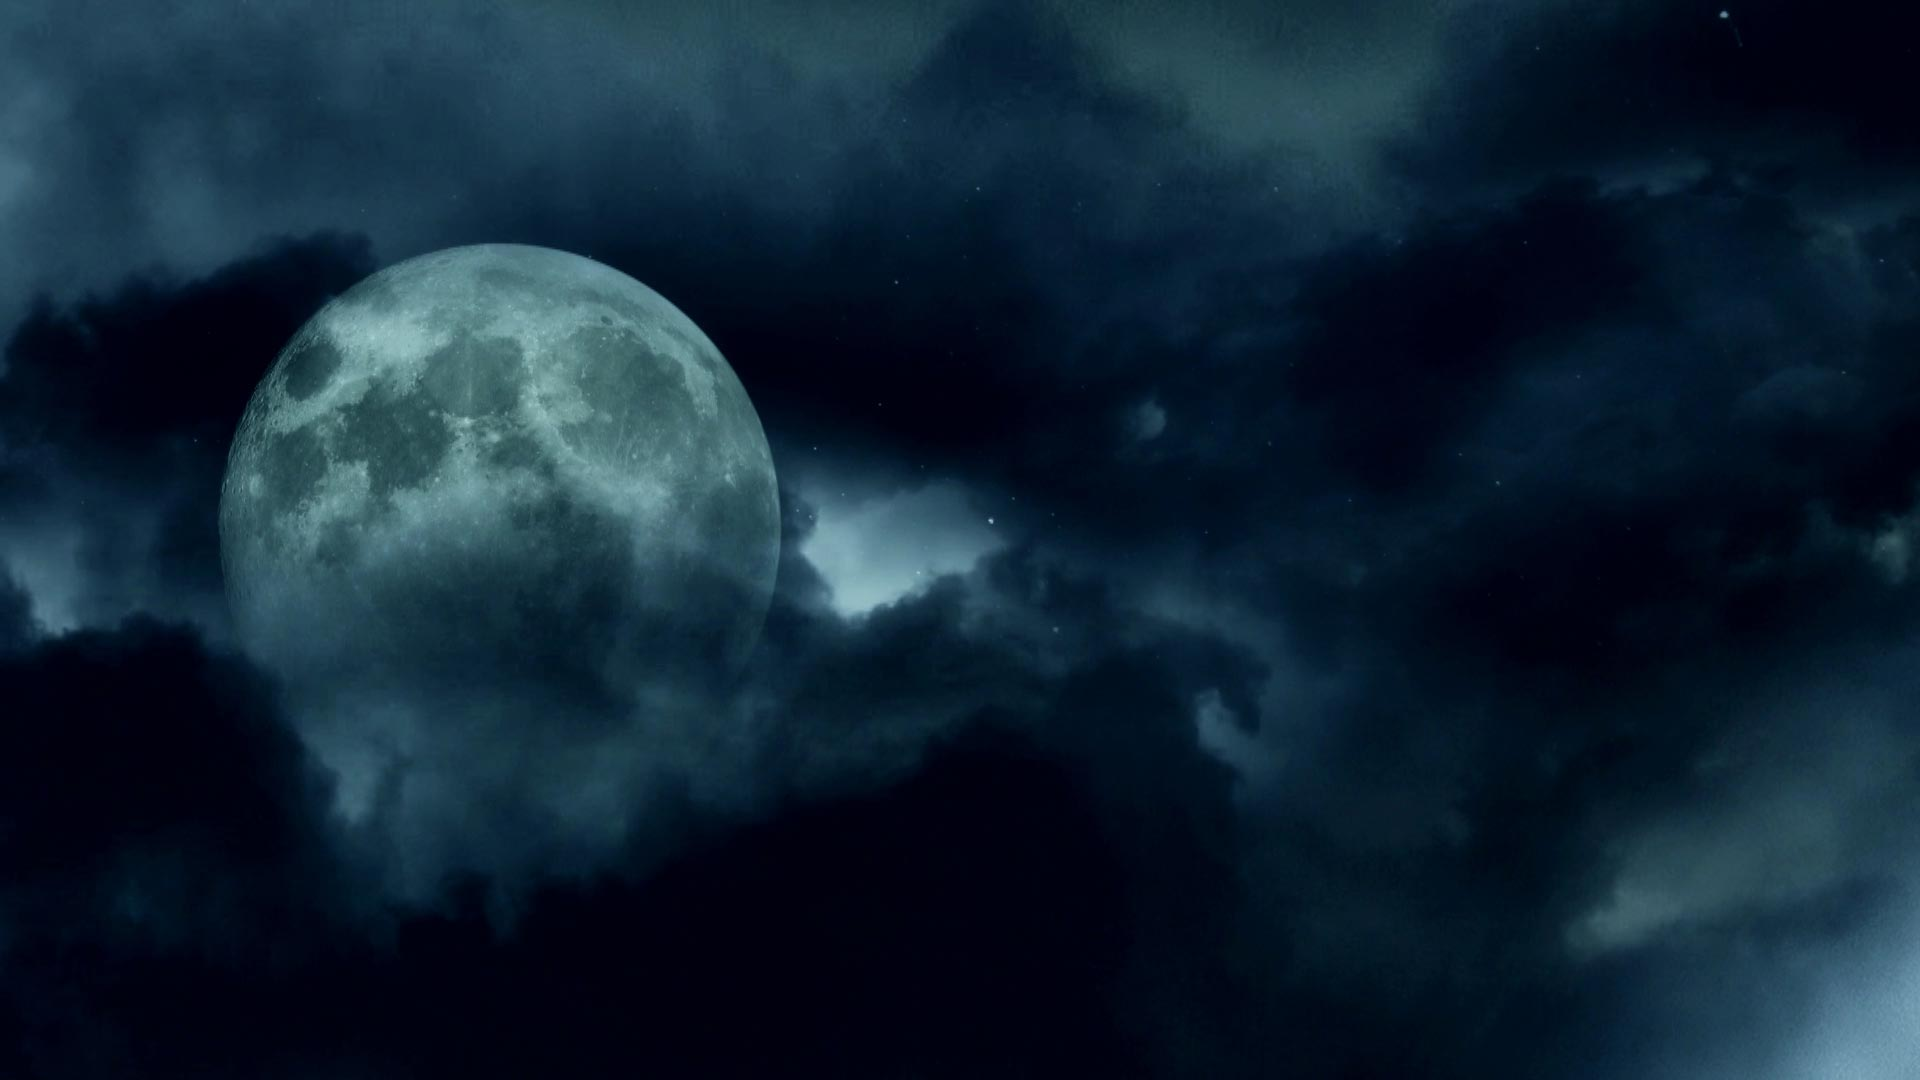 Night-Sky-Panorama-Dark-Clouds-And-The-Moon10-56-33